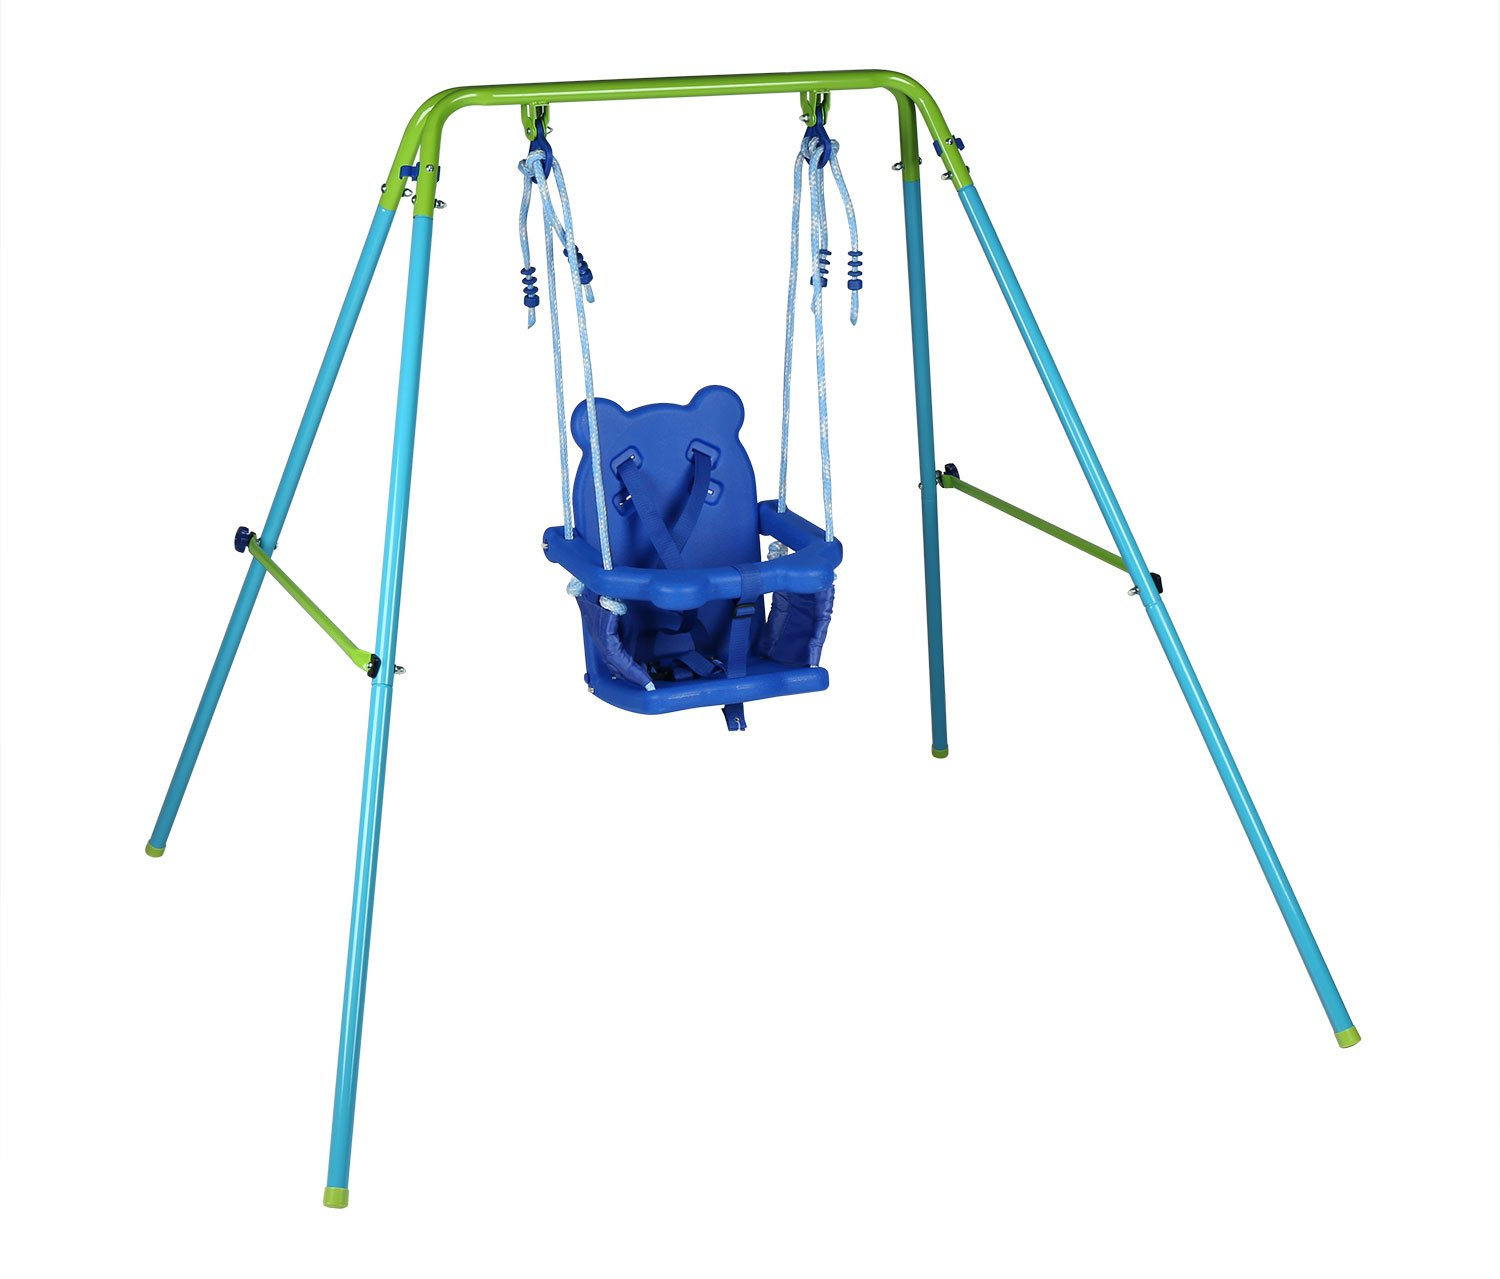 Top 10 Best Safe Outdoor Toddler Swing Sets Reviews 2016-2017 on ...